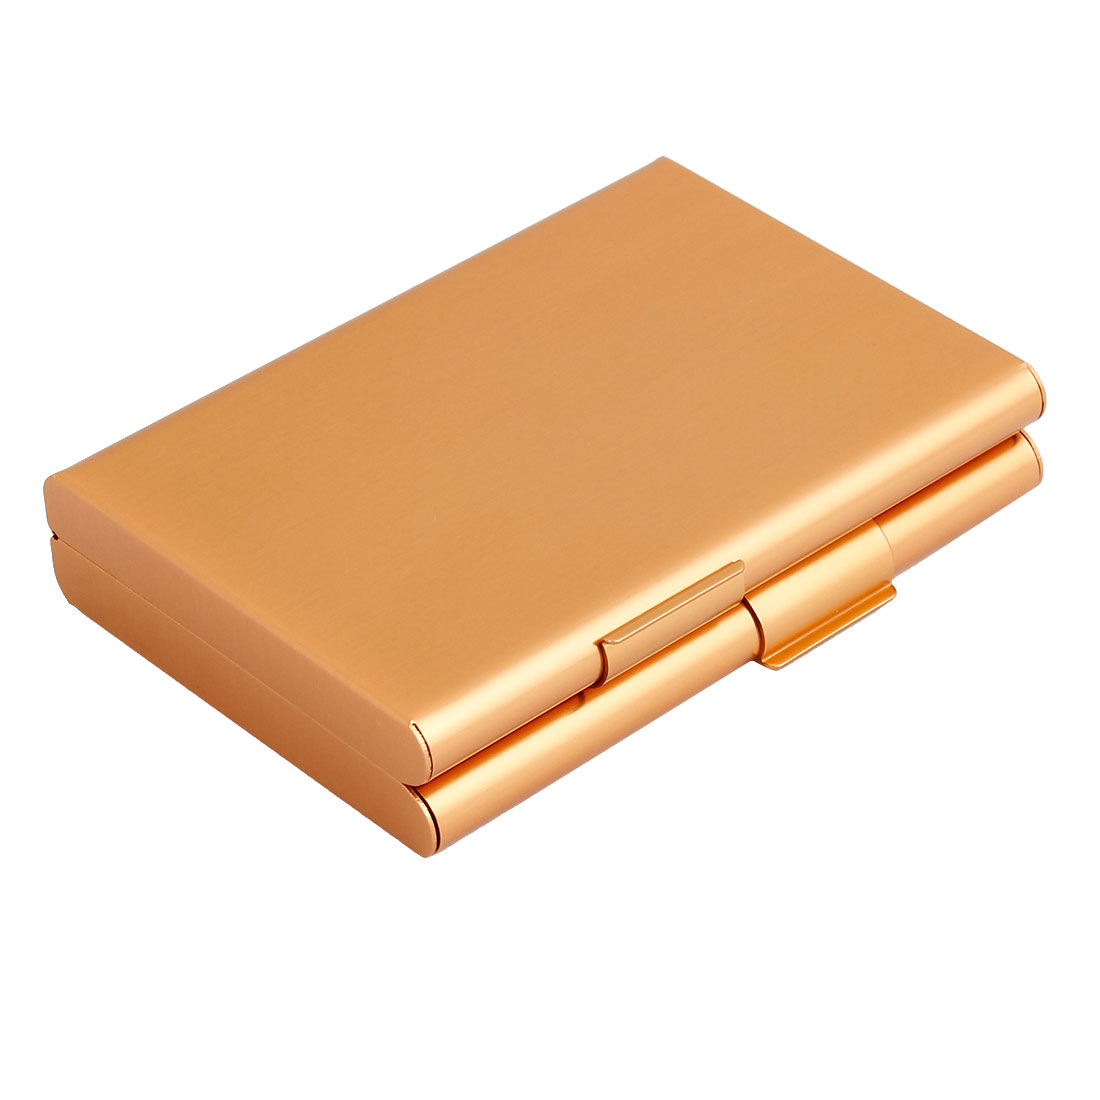 Gold Tone Aluminum 2 Compartments Cigarette Cigar Case Box Holder